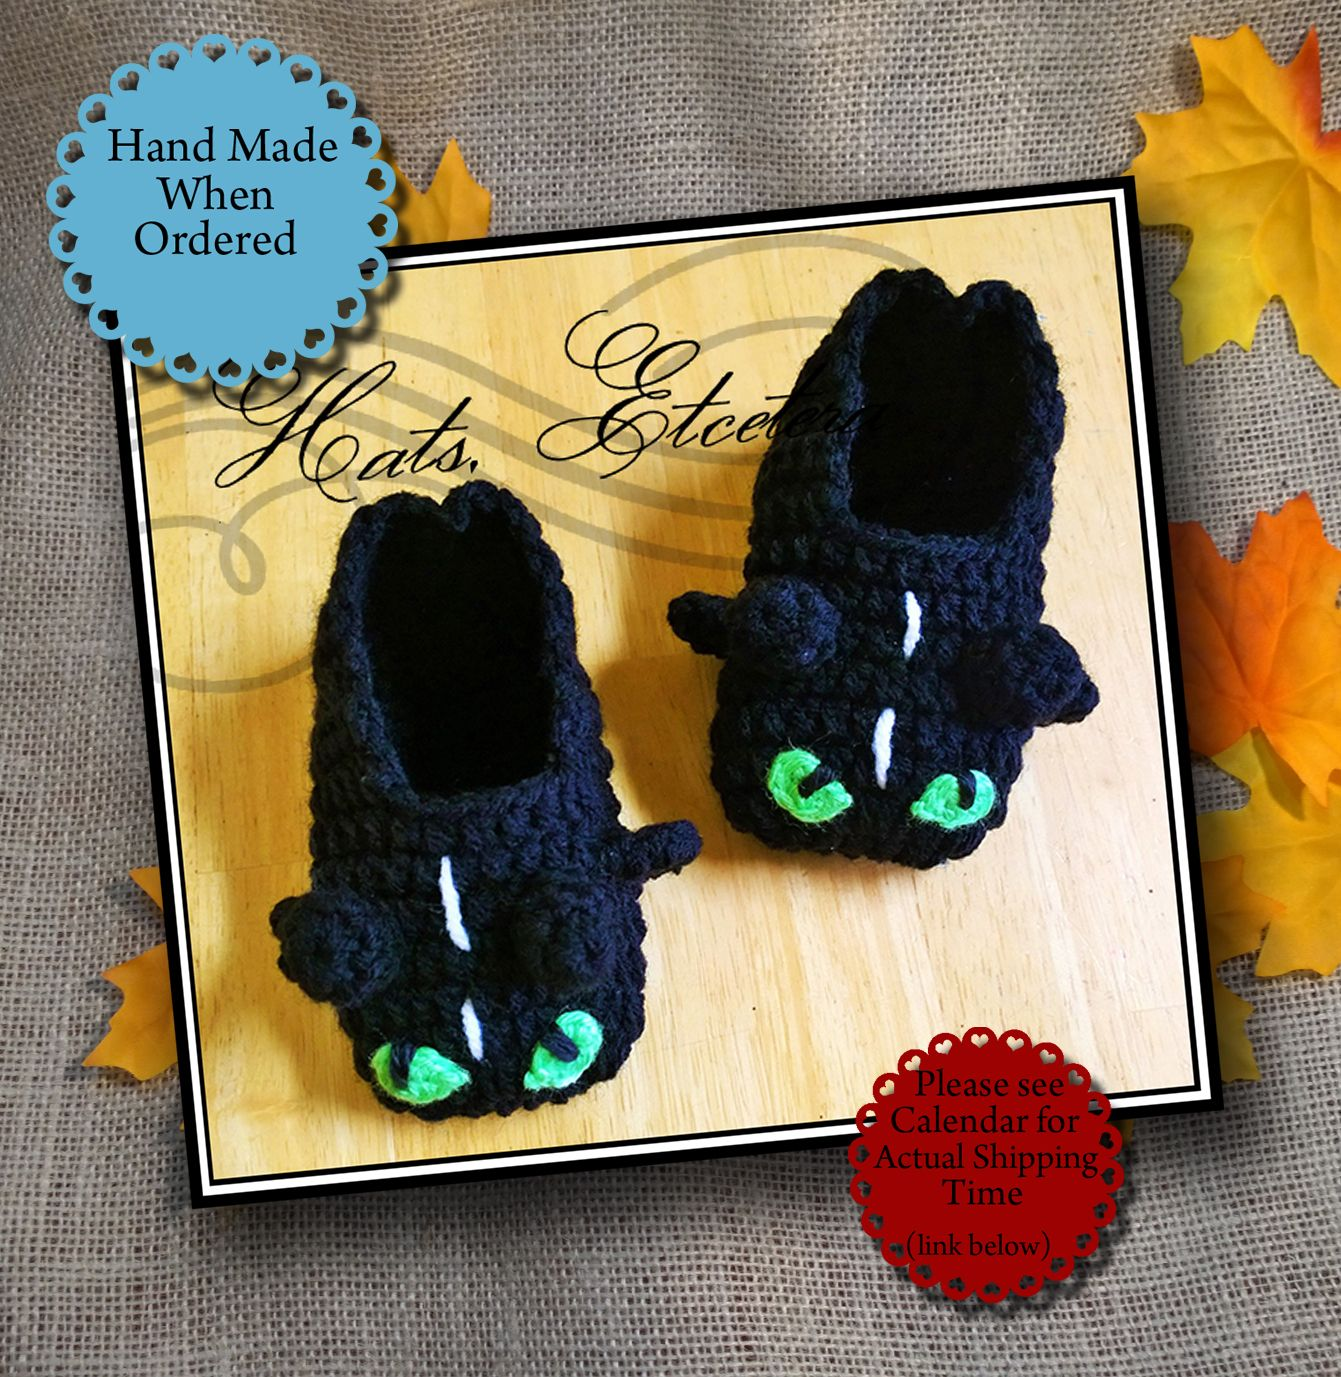 Toothless Slippers, Inspired by How to Train Your Dragon $18 email ...